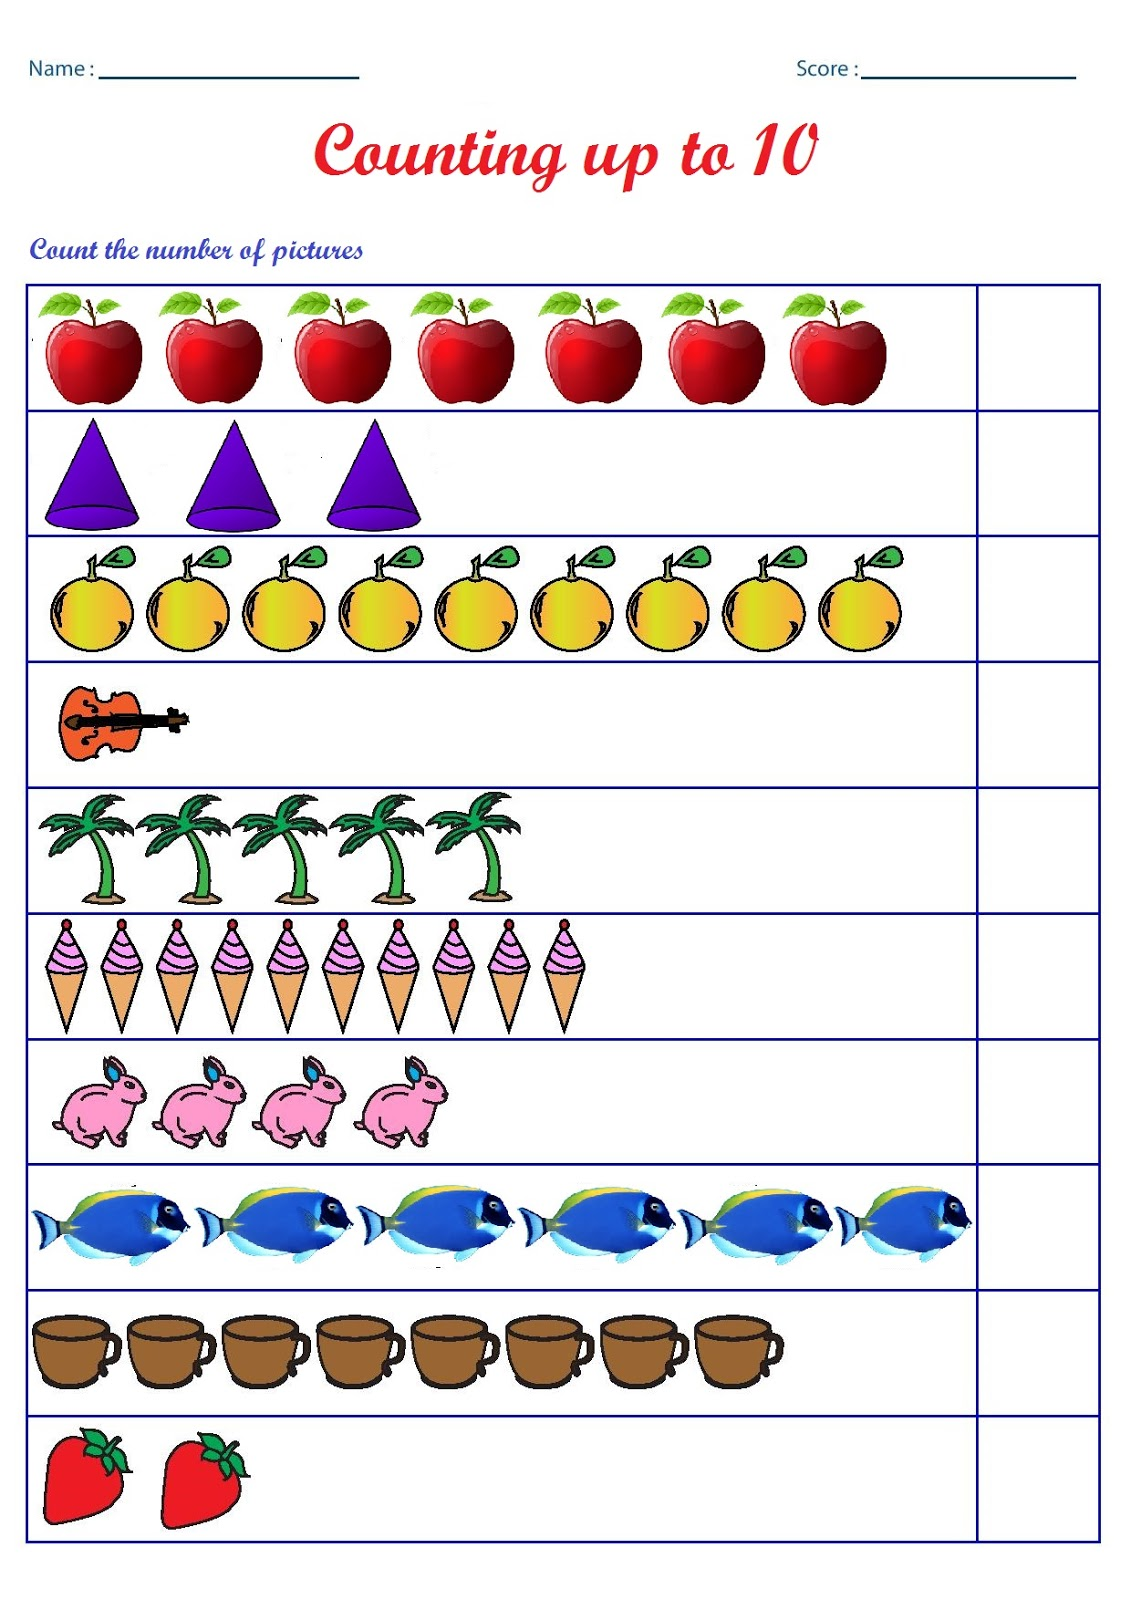 Kindergarten Worksheets: Counting Worksheets - Count the number of ...